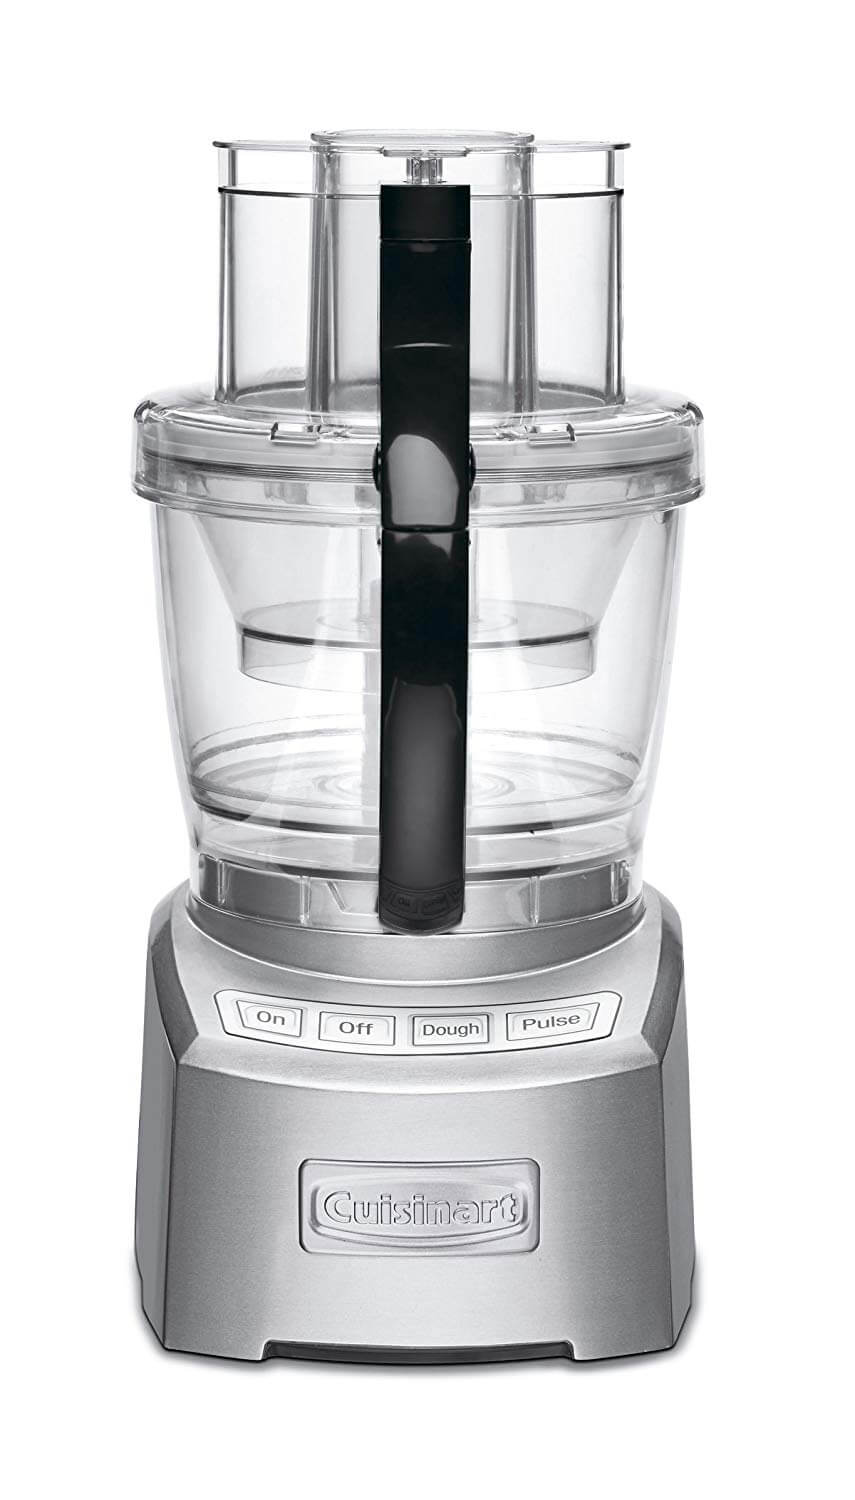 Cuisinart FP-14DC Elite Collection 14-Cup Food Processor